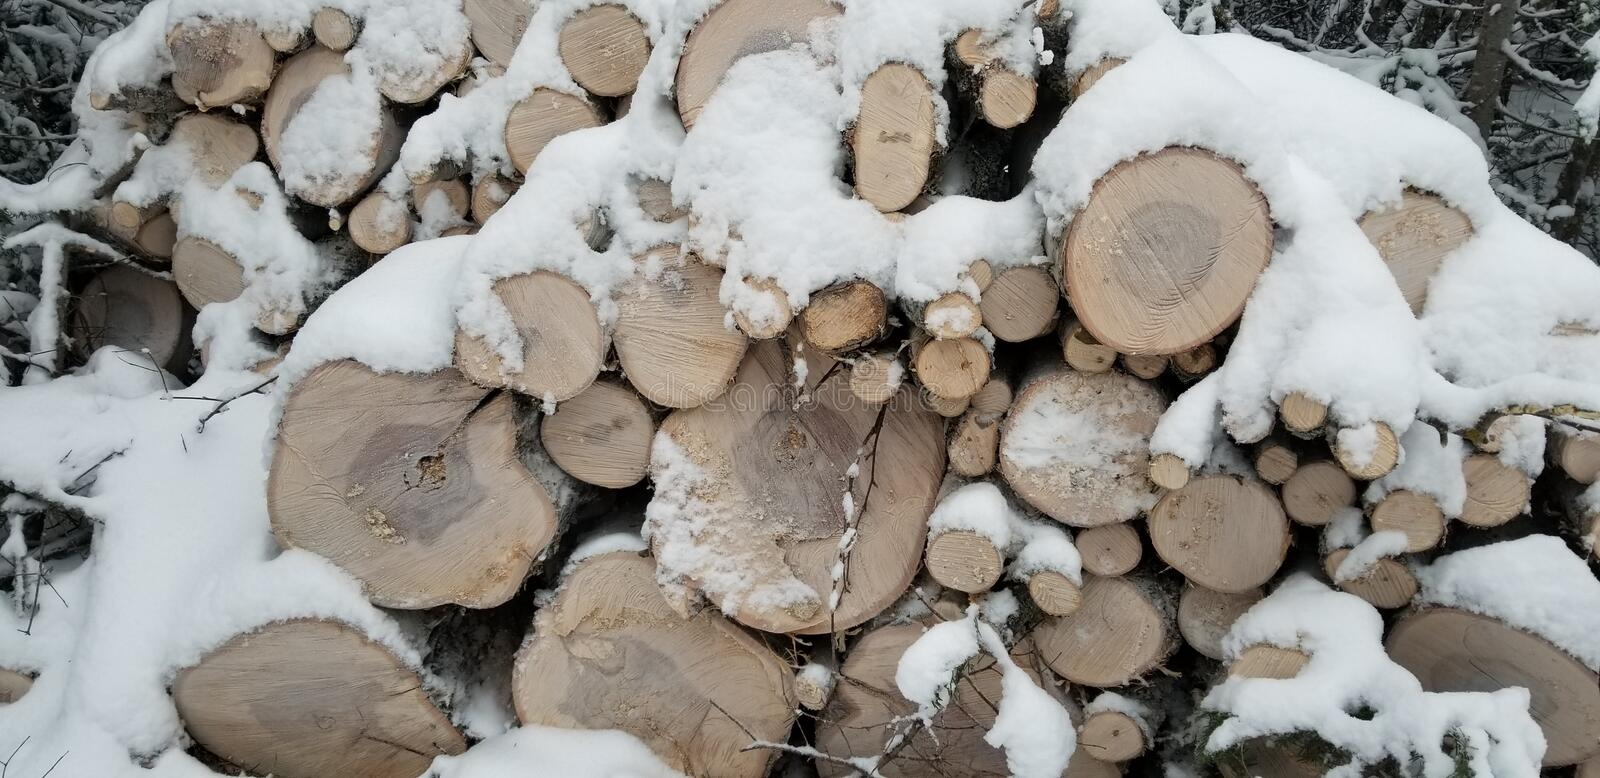 Cord of wood pile in the forest. Full of snow.  White winter. Wood log. Cord of wood pile in the forest. Full of snow stock photos